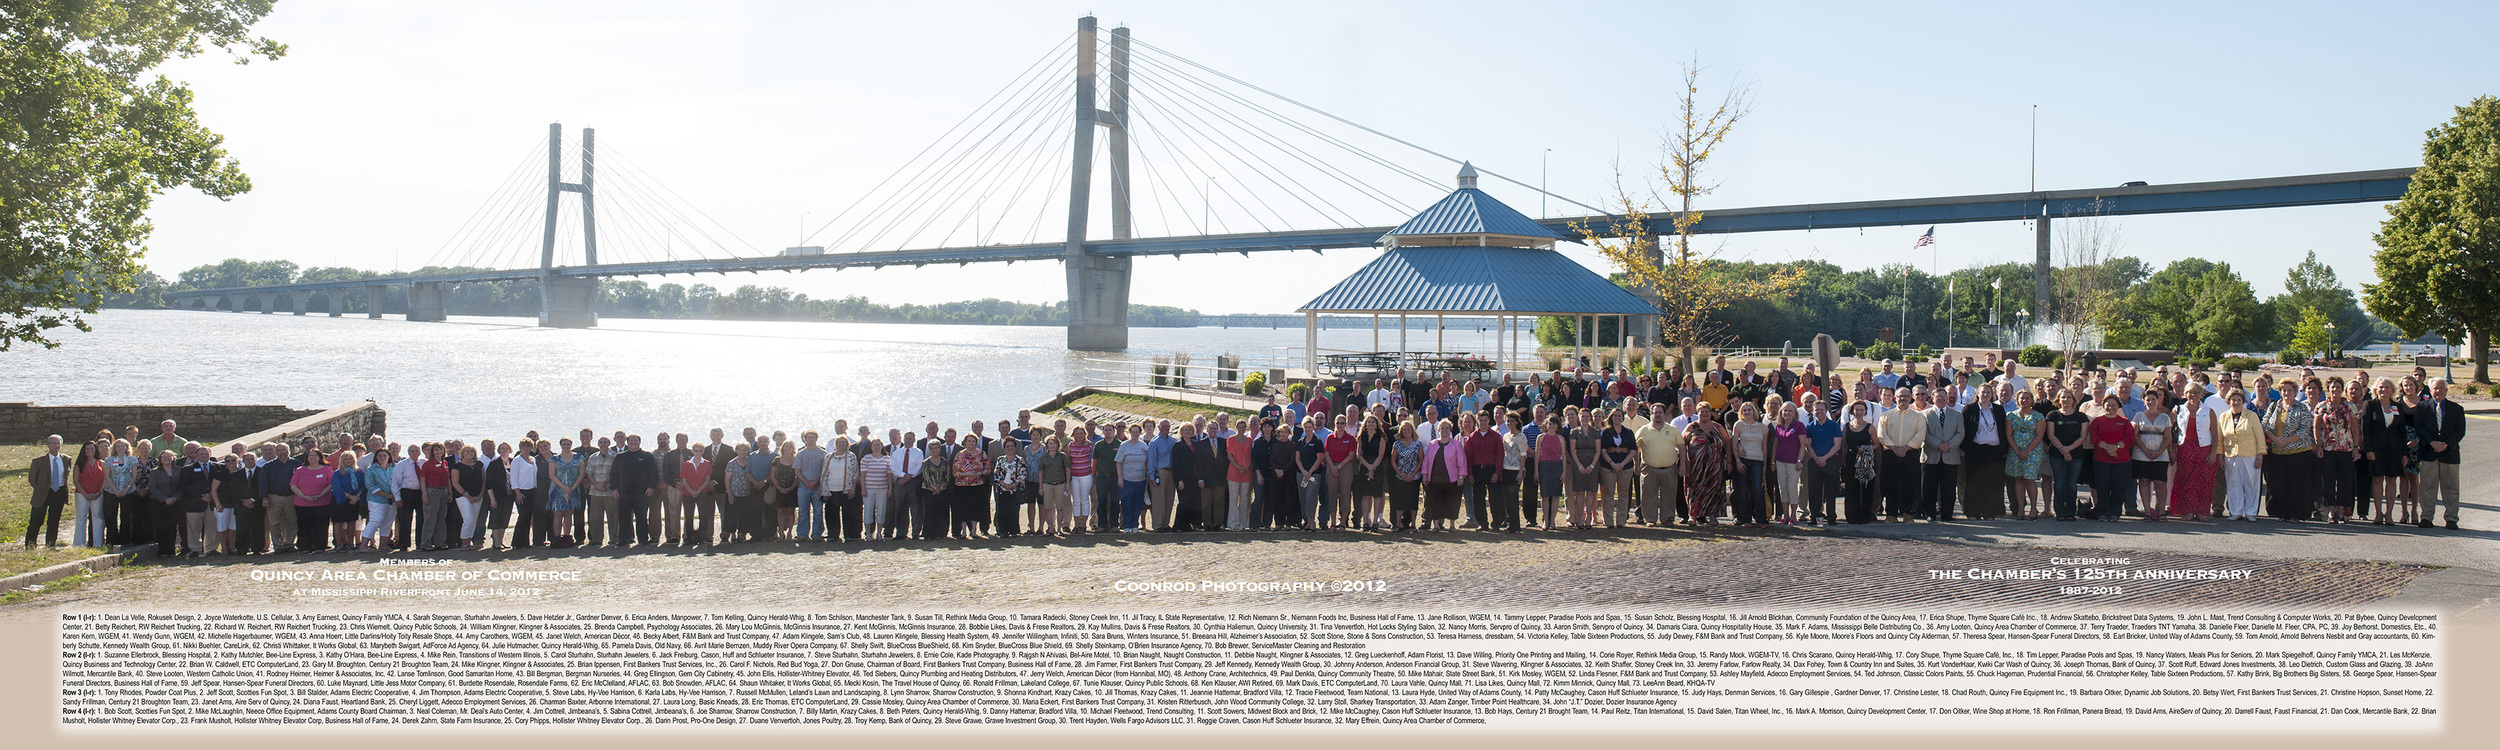 211 Members of the Quincy Chamber of Commerce